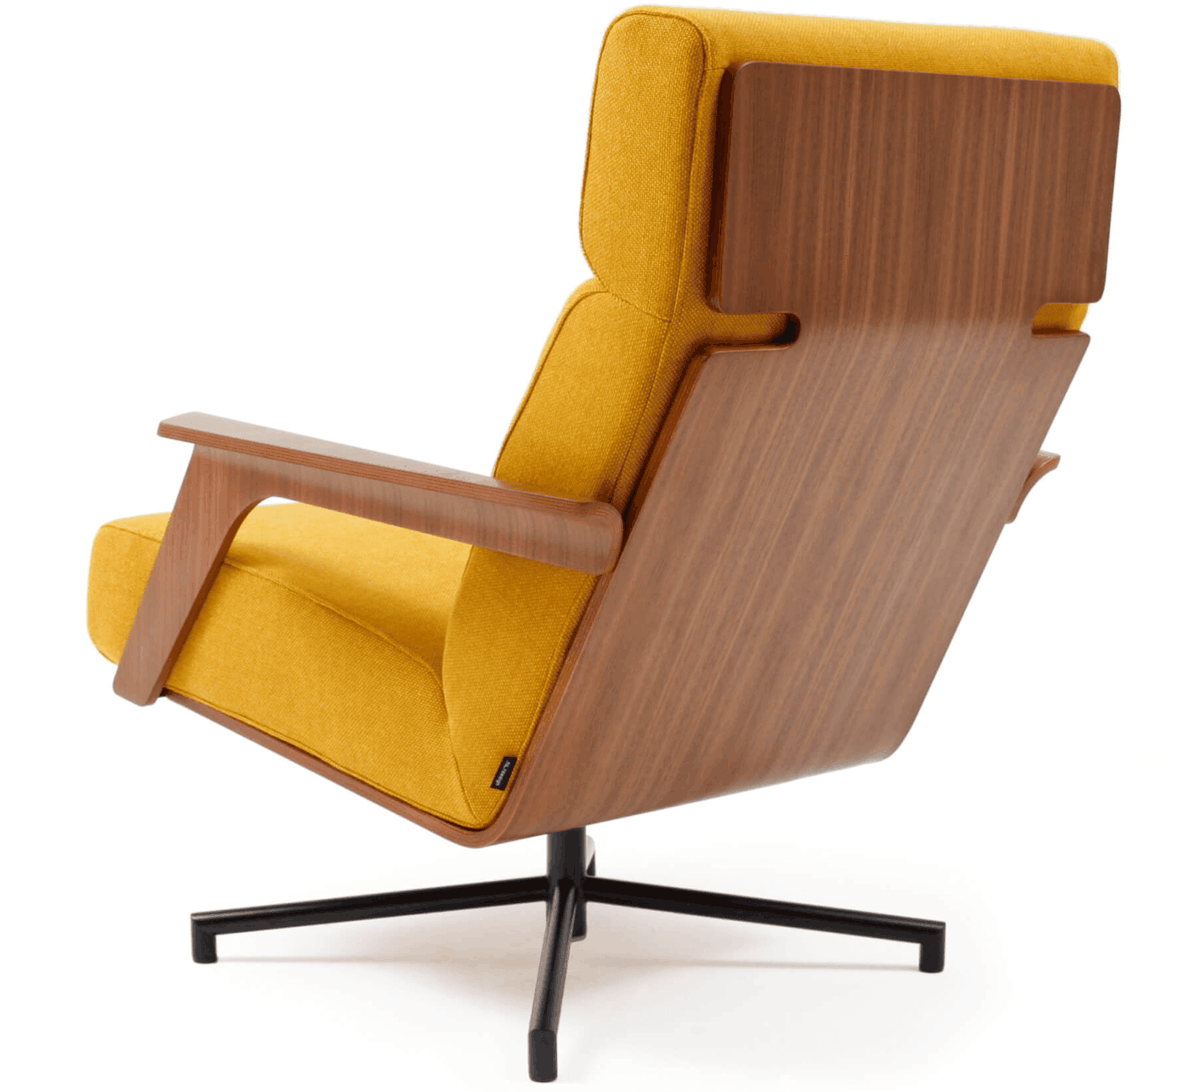 Harvink fauteuil kaap 11